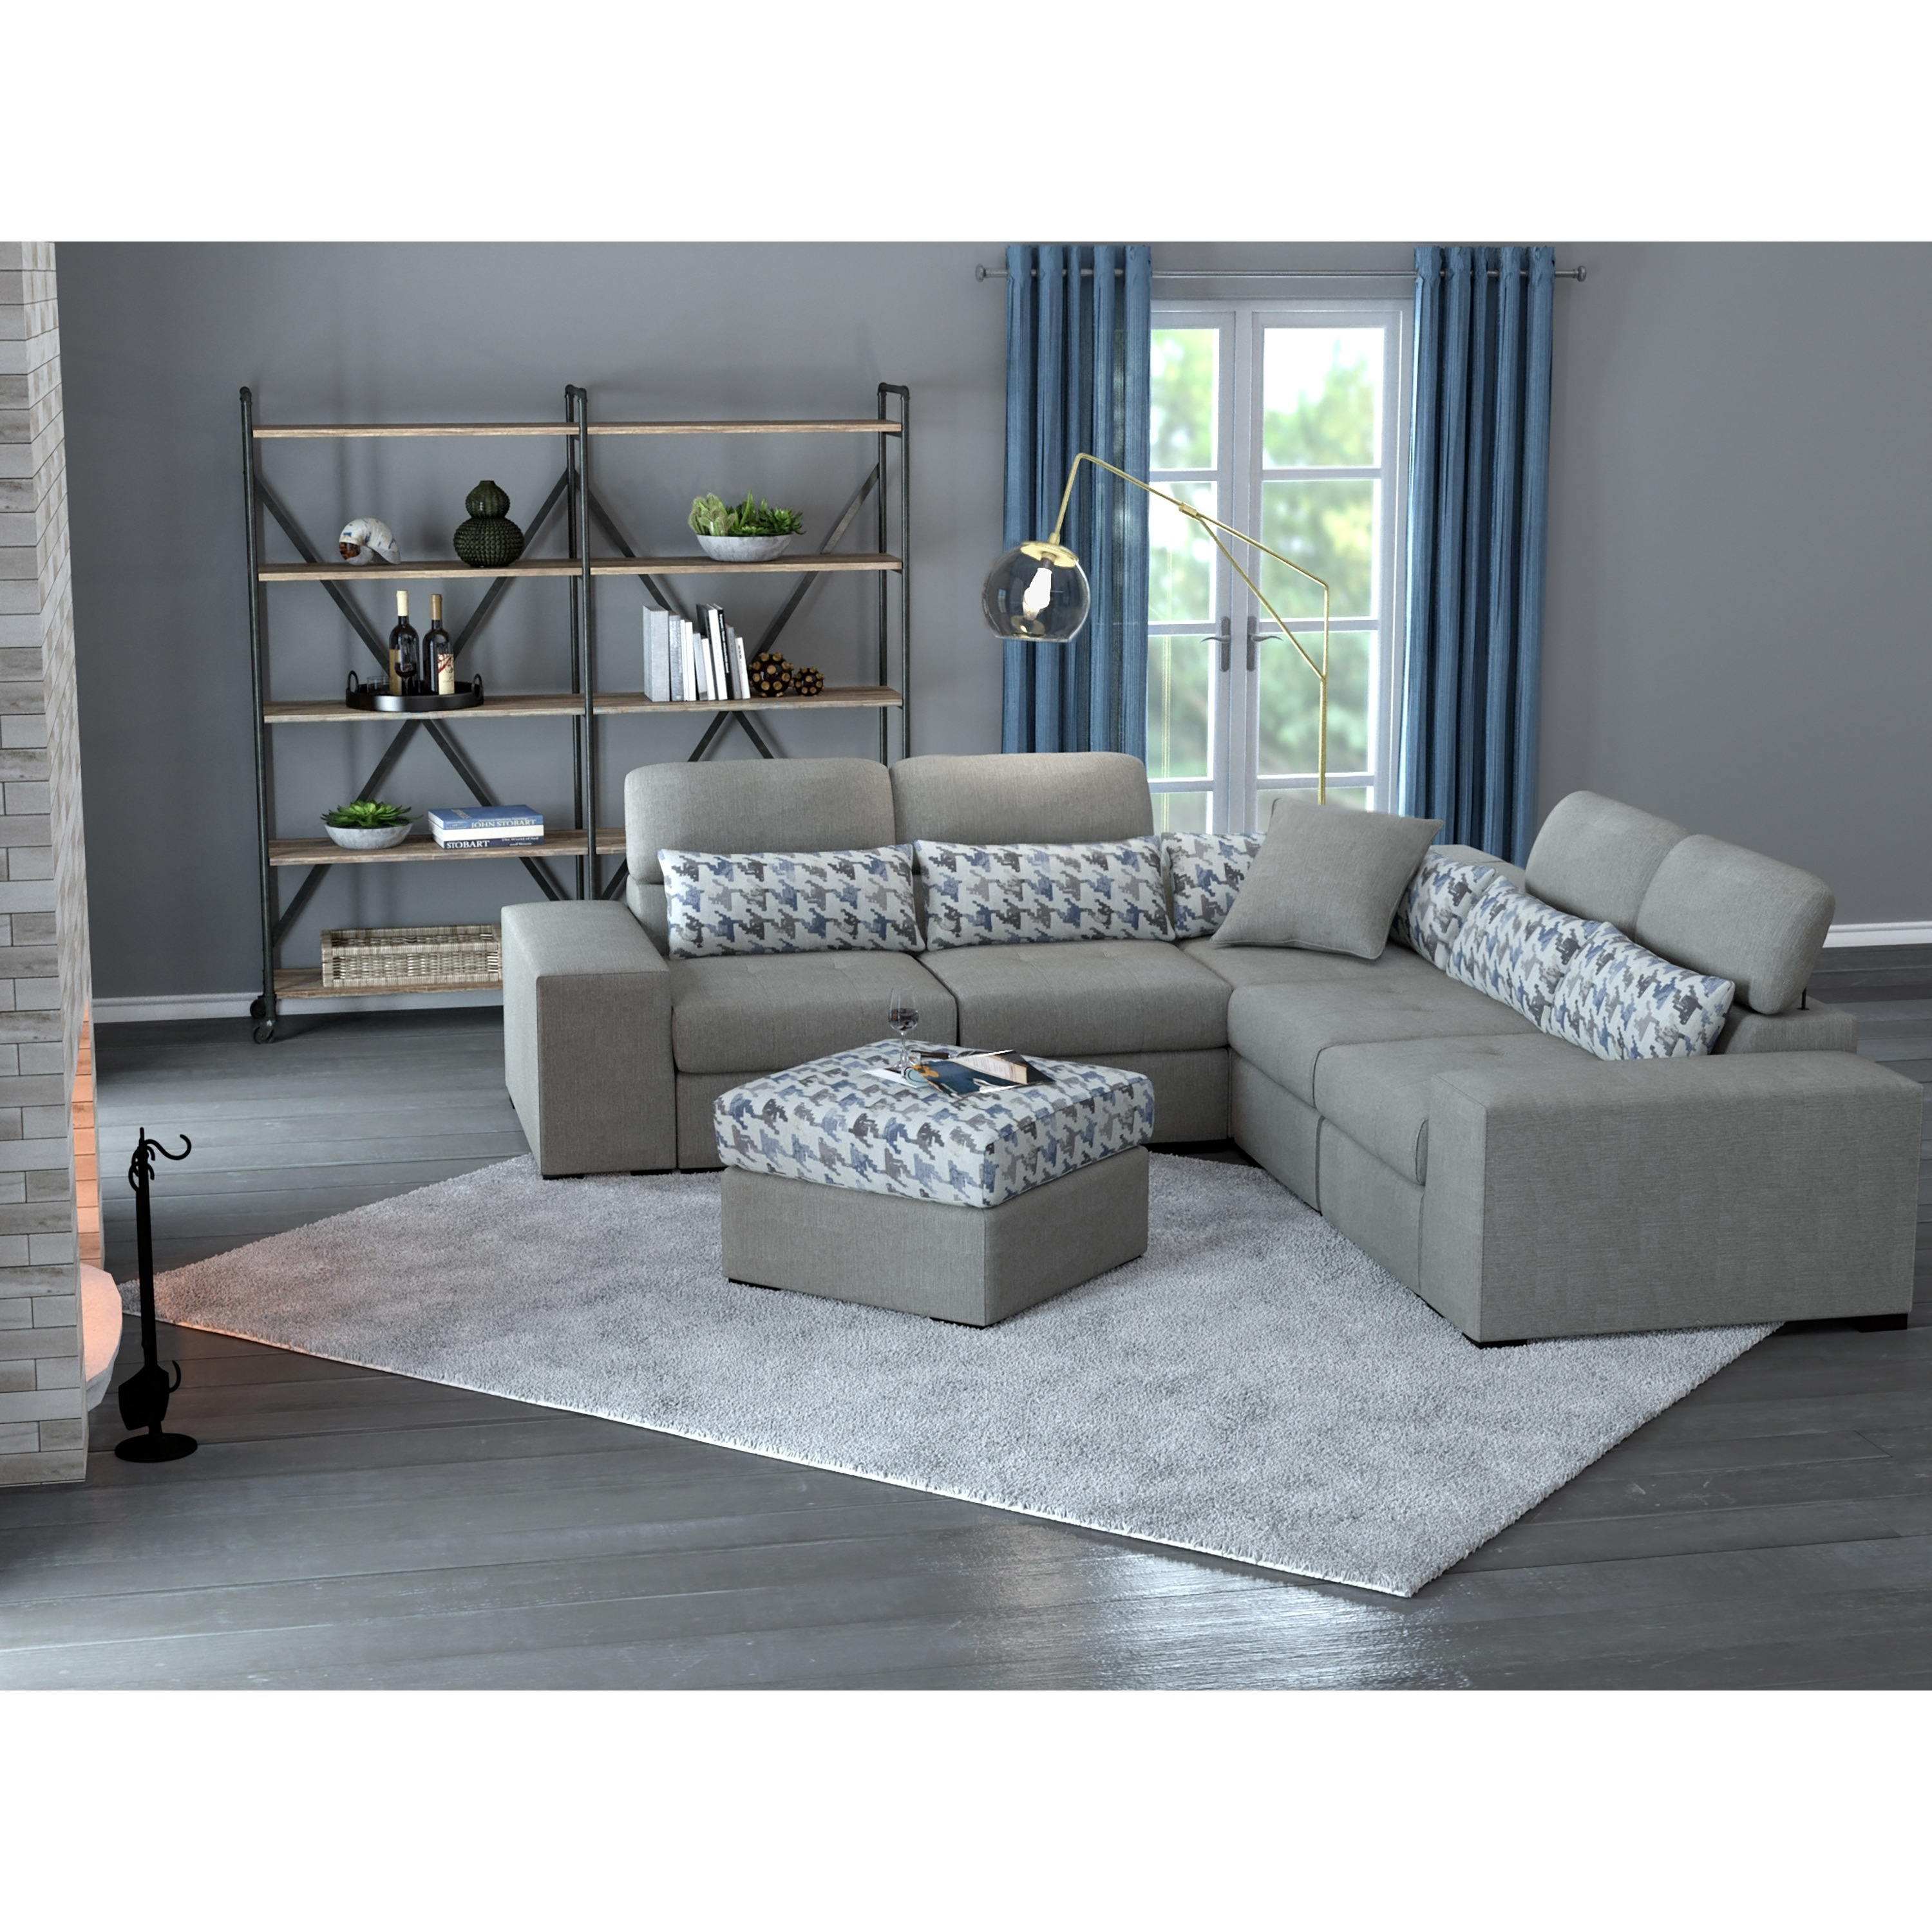 Awesome Copper Grove Ciney Rhap Dove Grey Mix 6 Piece Sectional And Gmtry Best Dining Table And Chair Ideas Images Gmtryco